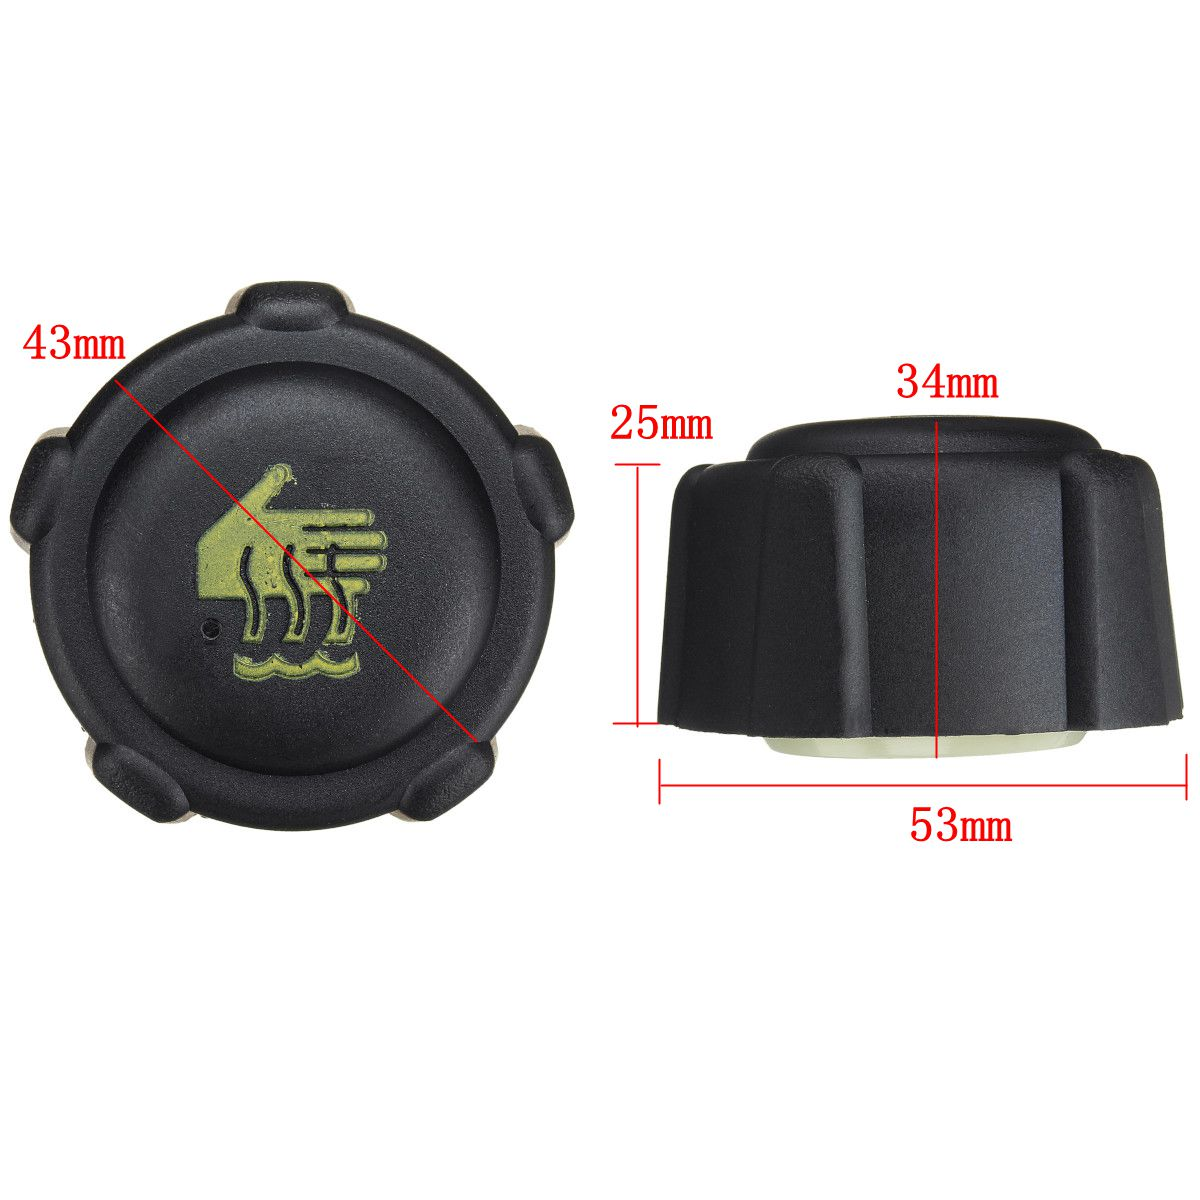 Twingo Thalia Radiator Expansion Water Tank Cap For Renault Scenic Traffic ll